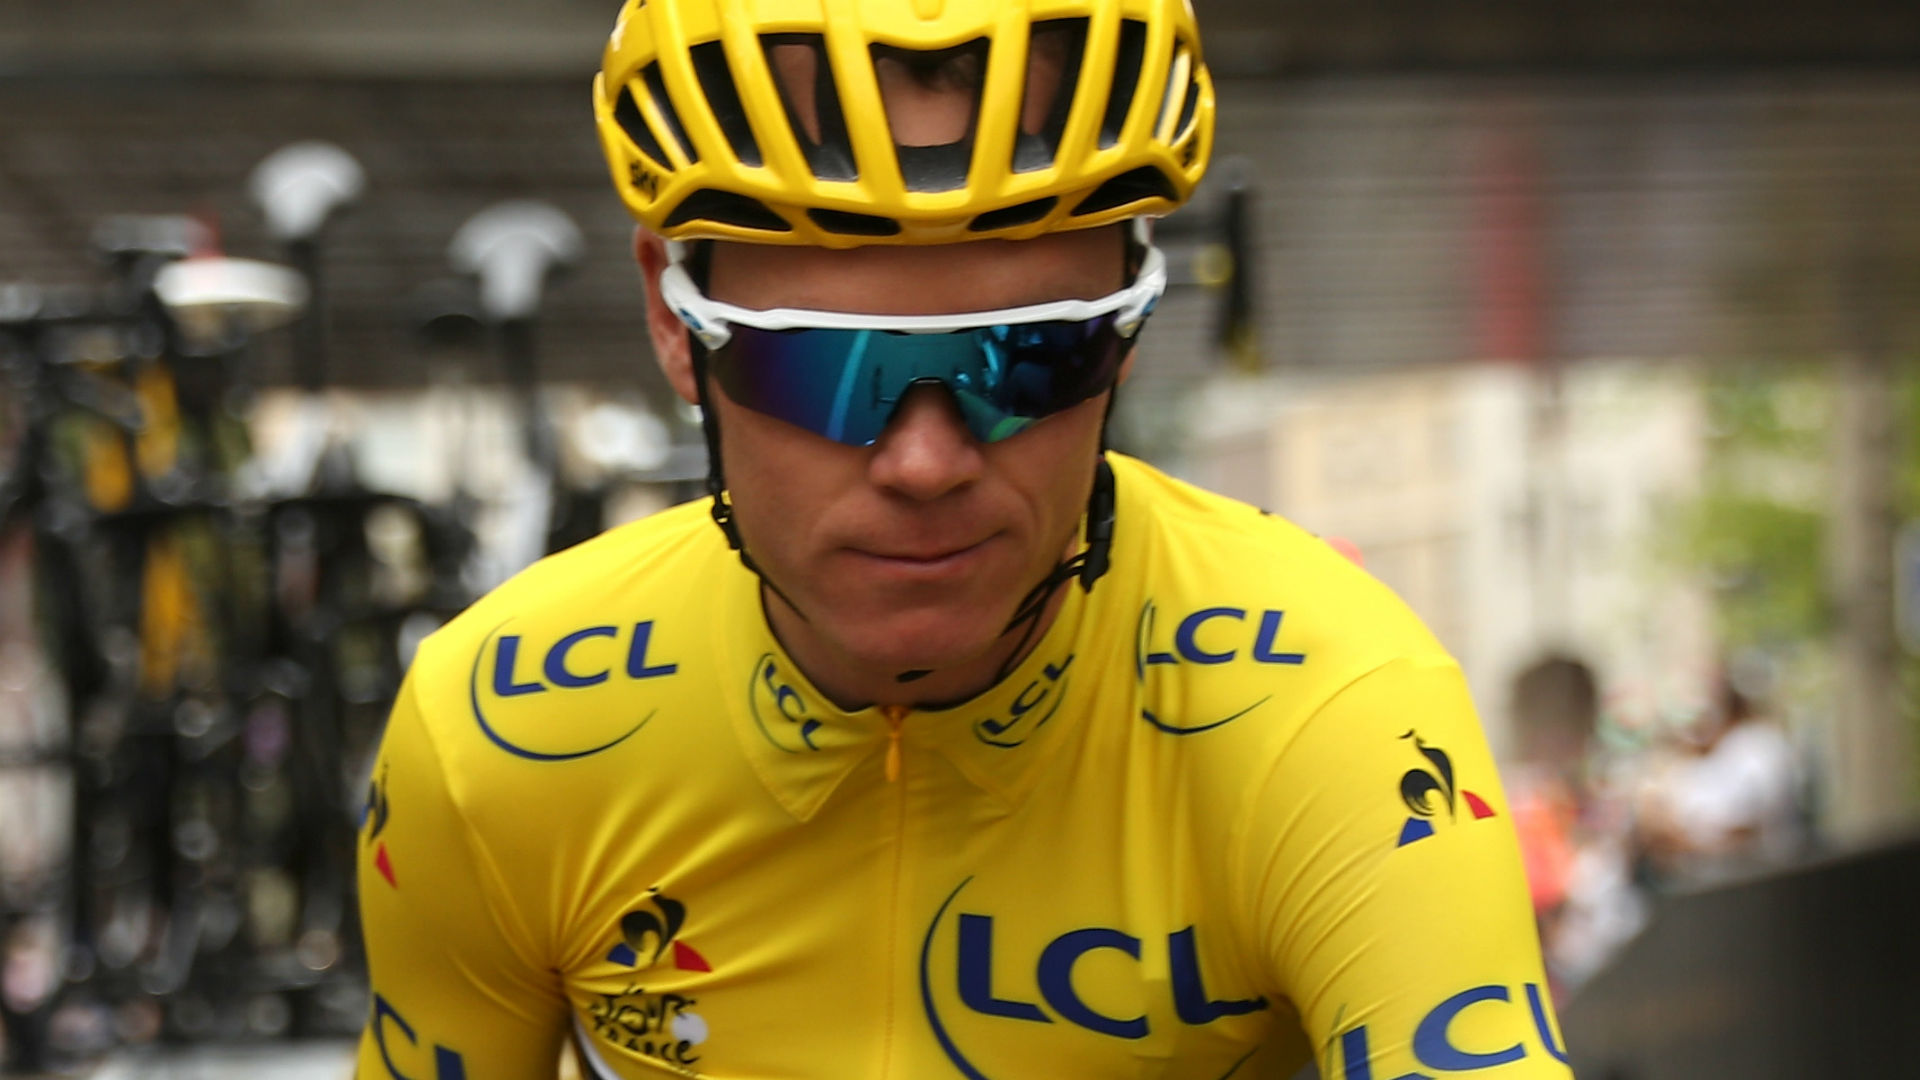 Team INEOS confirm extent of Froome's injuries